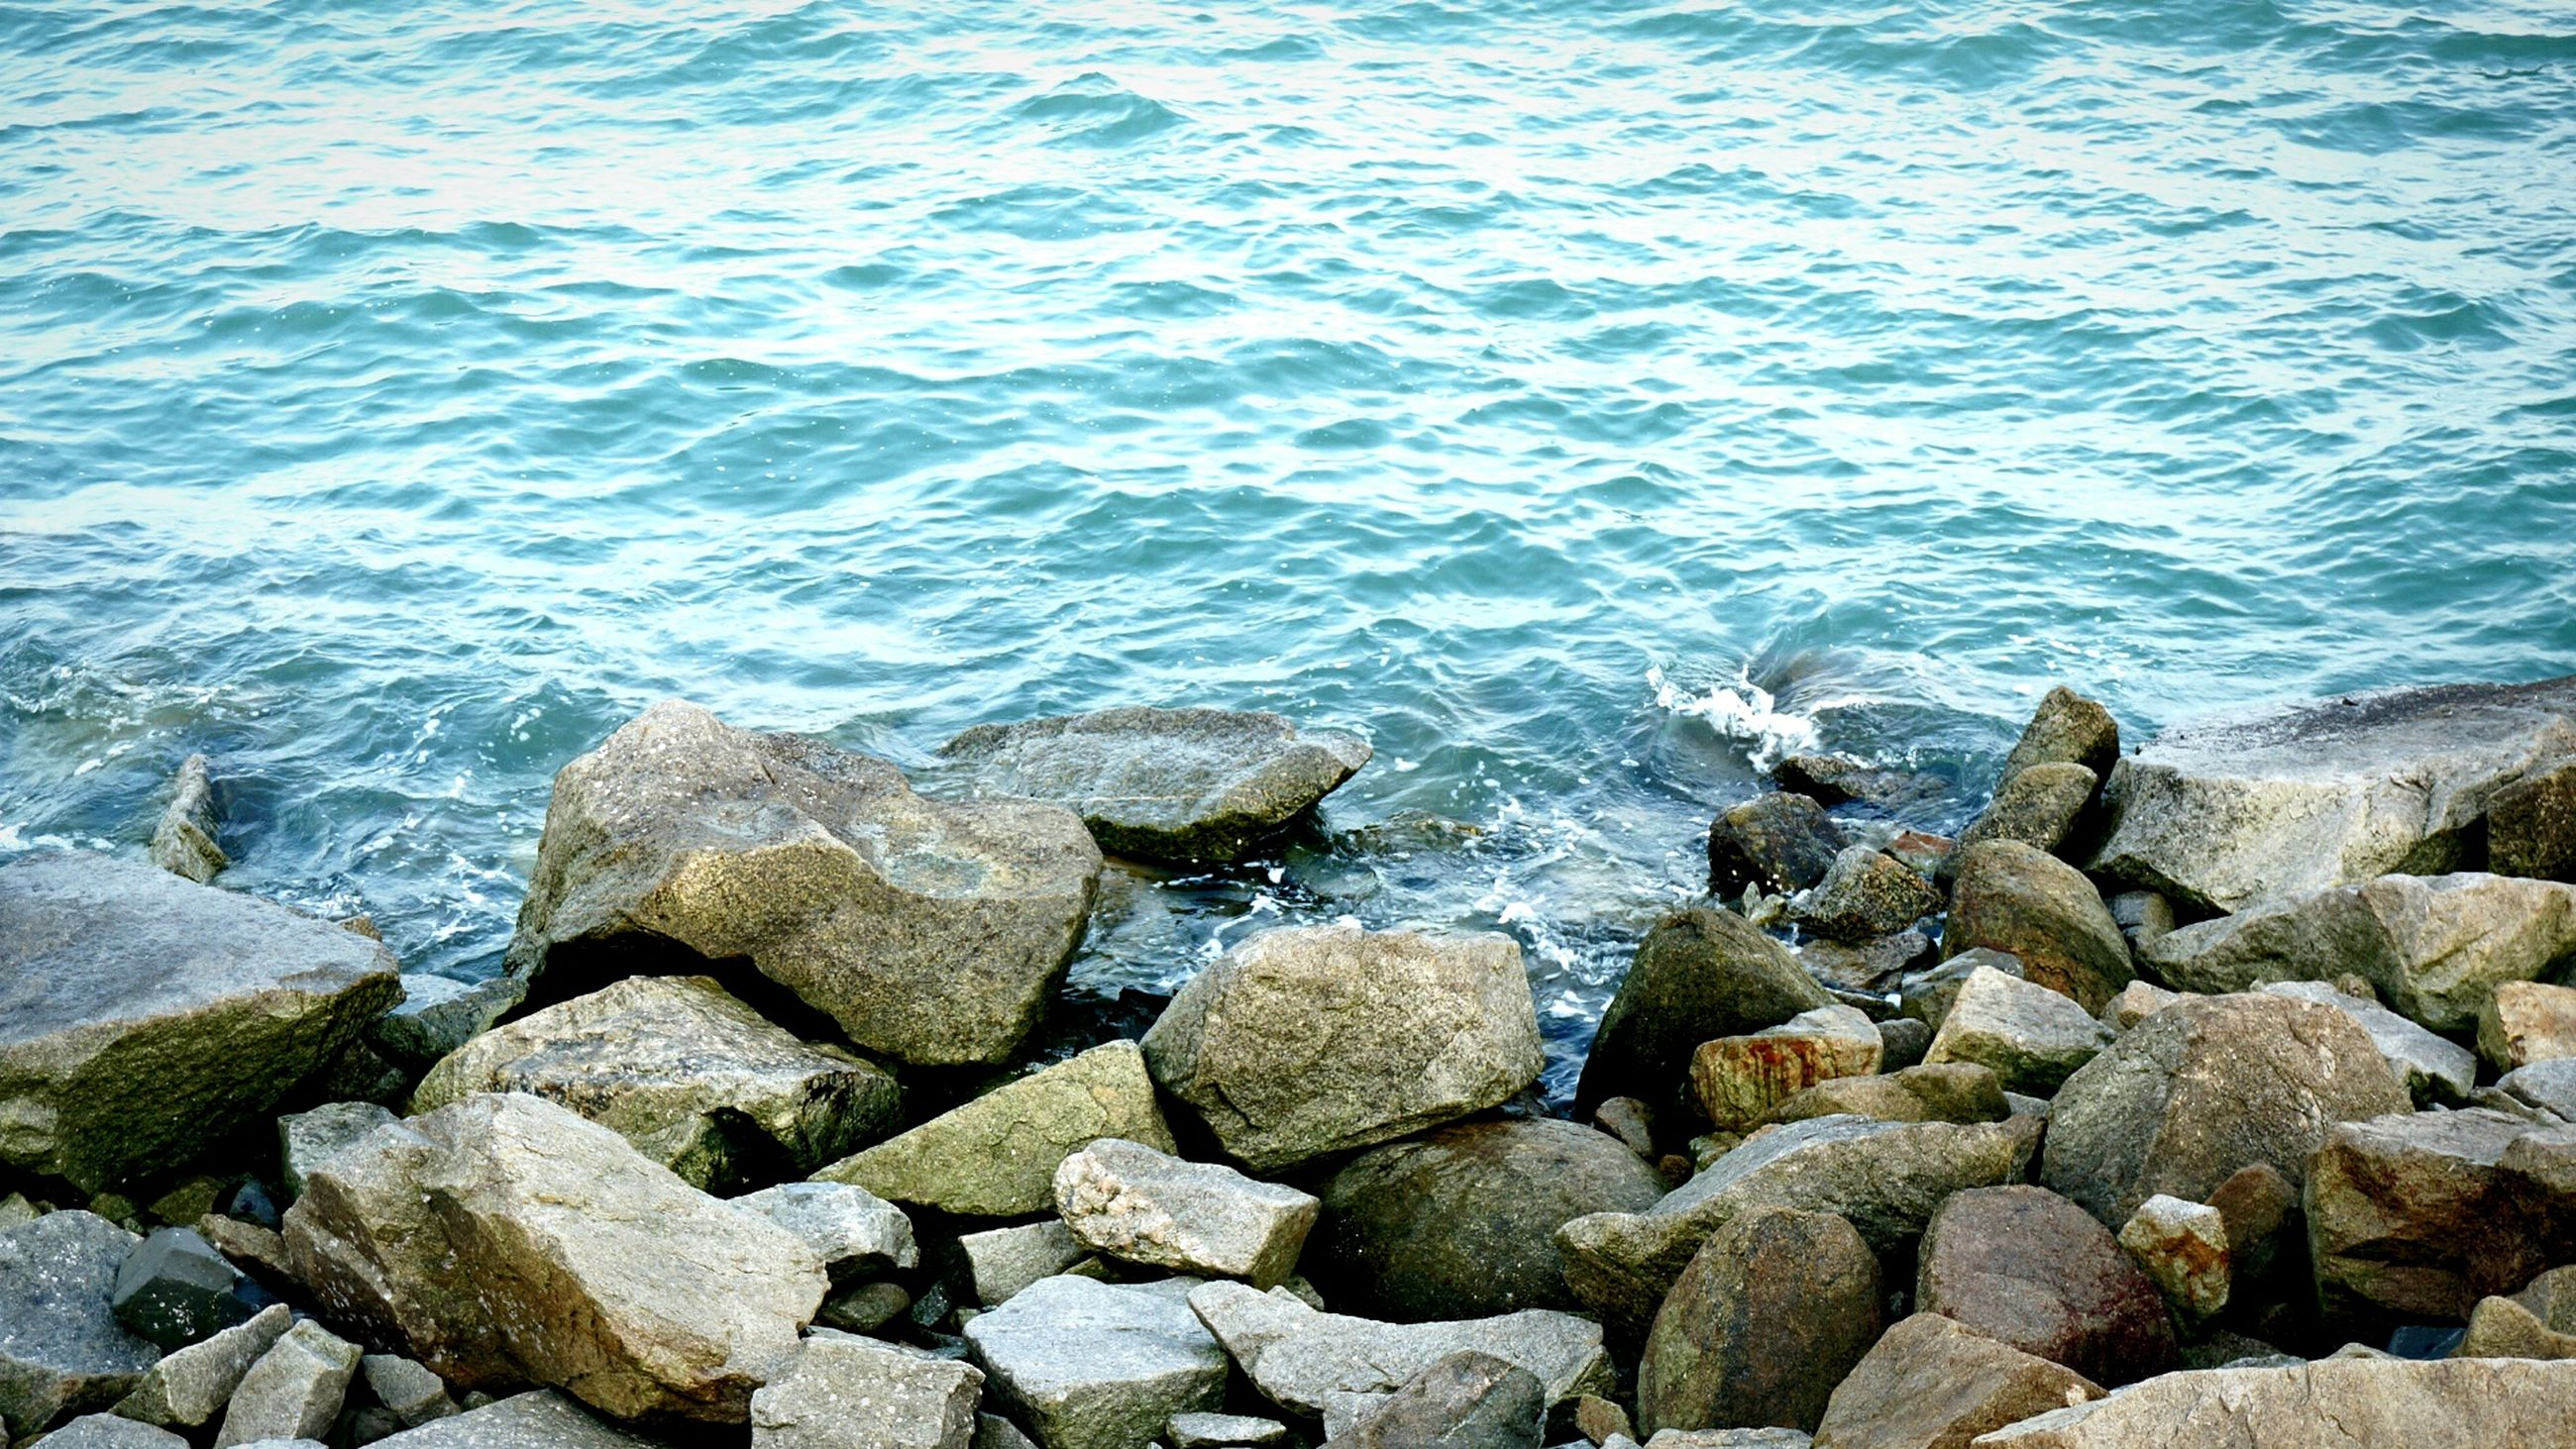 water, rock - object, sea, stone - object, pebble, nature, stone, tranquility, rock, high angle view, beauty in nature, shore, beach, rippled, day, outdoors, scenics, no people, textured, tranquil scene